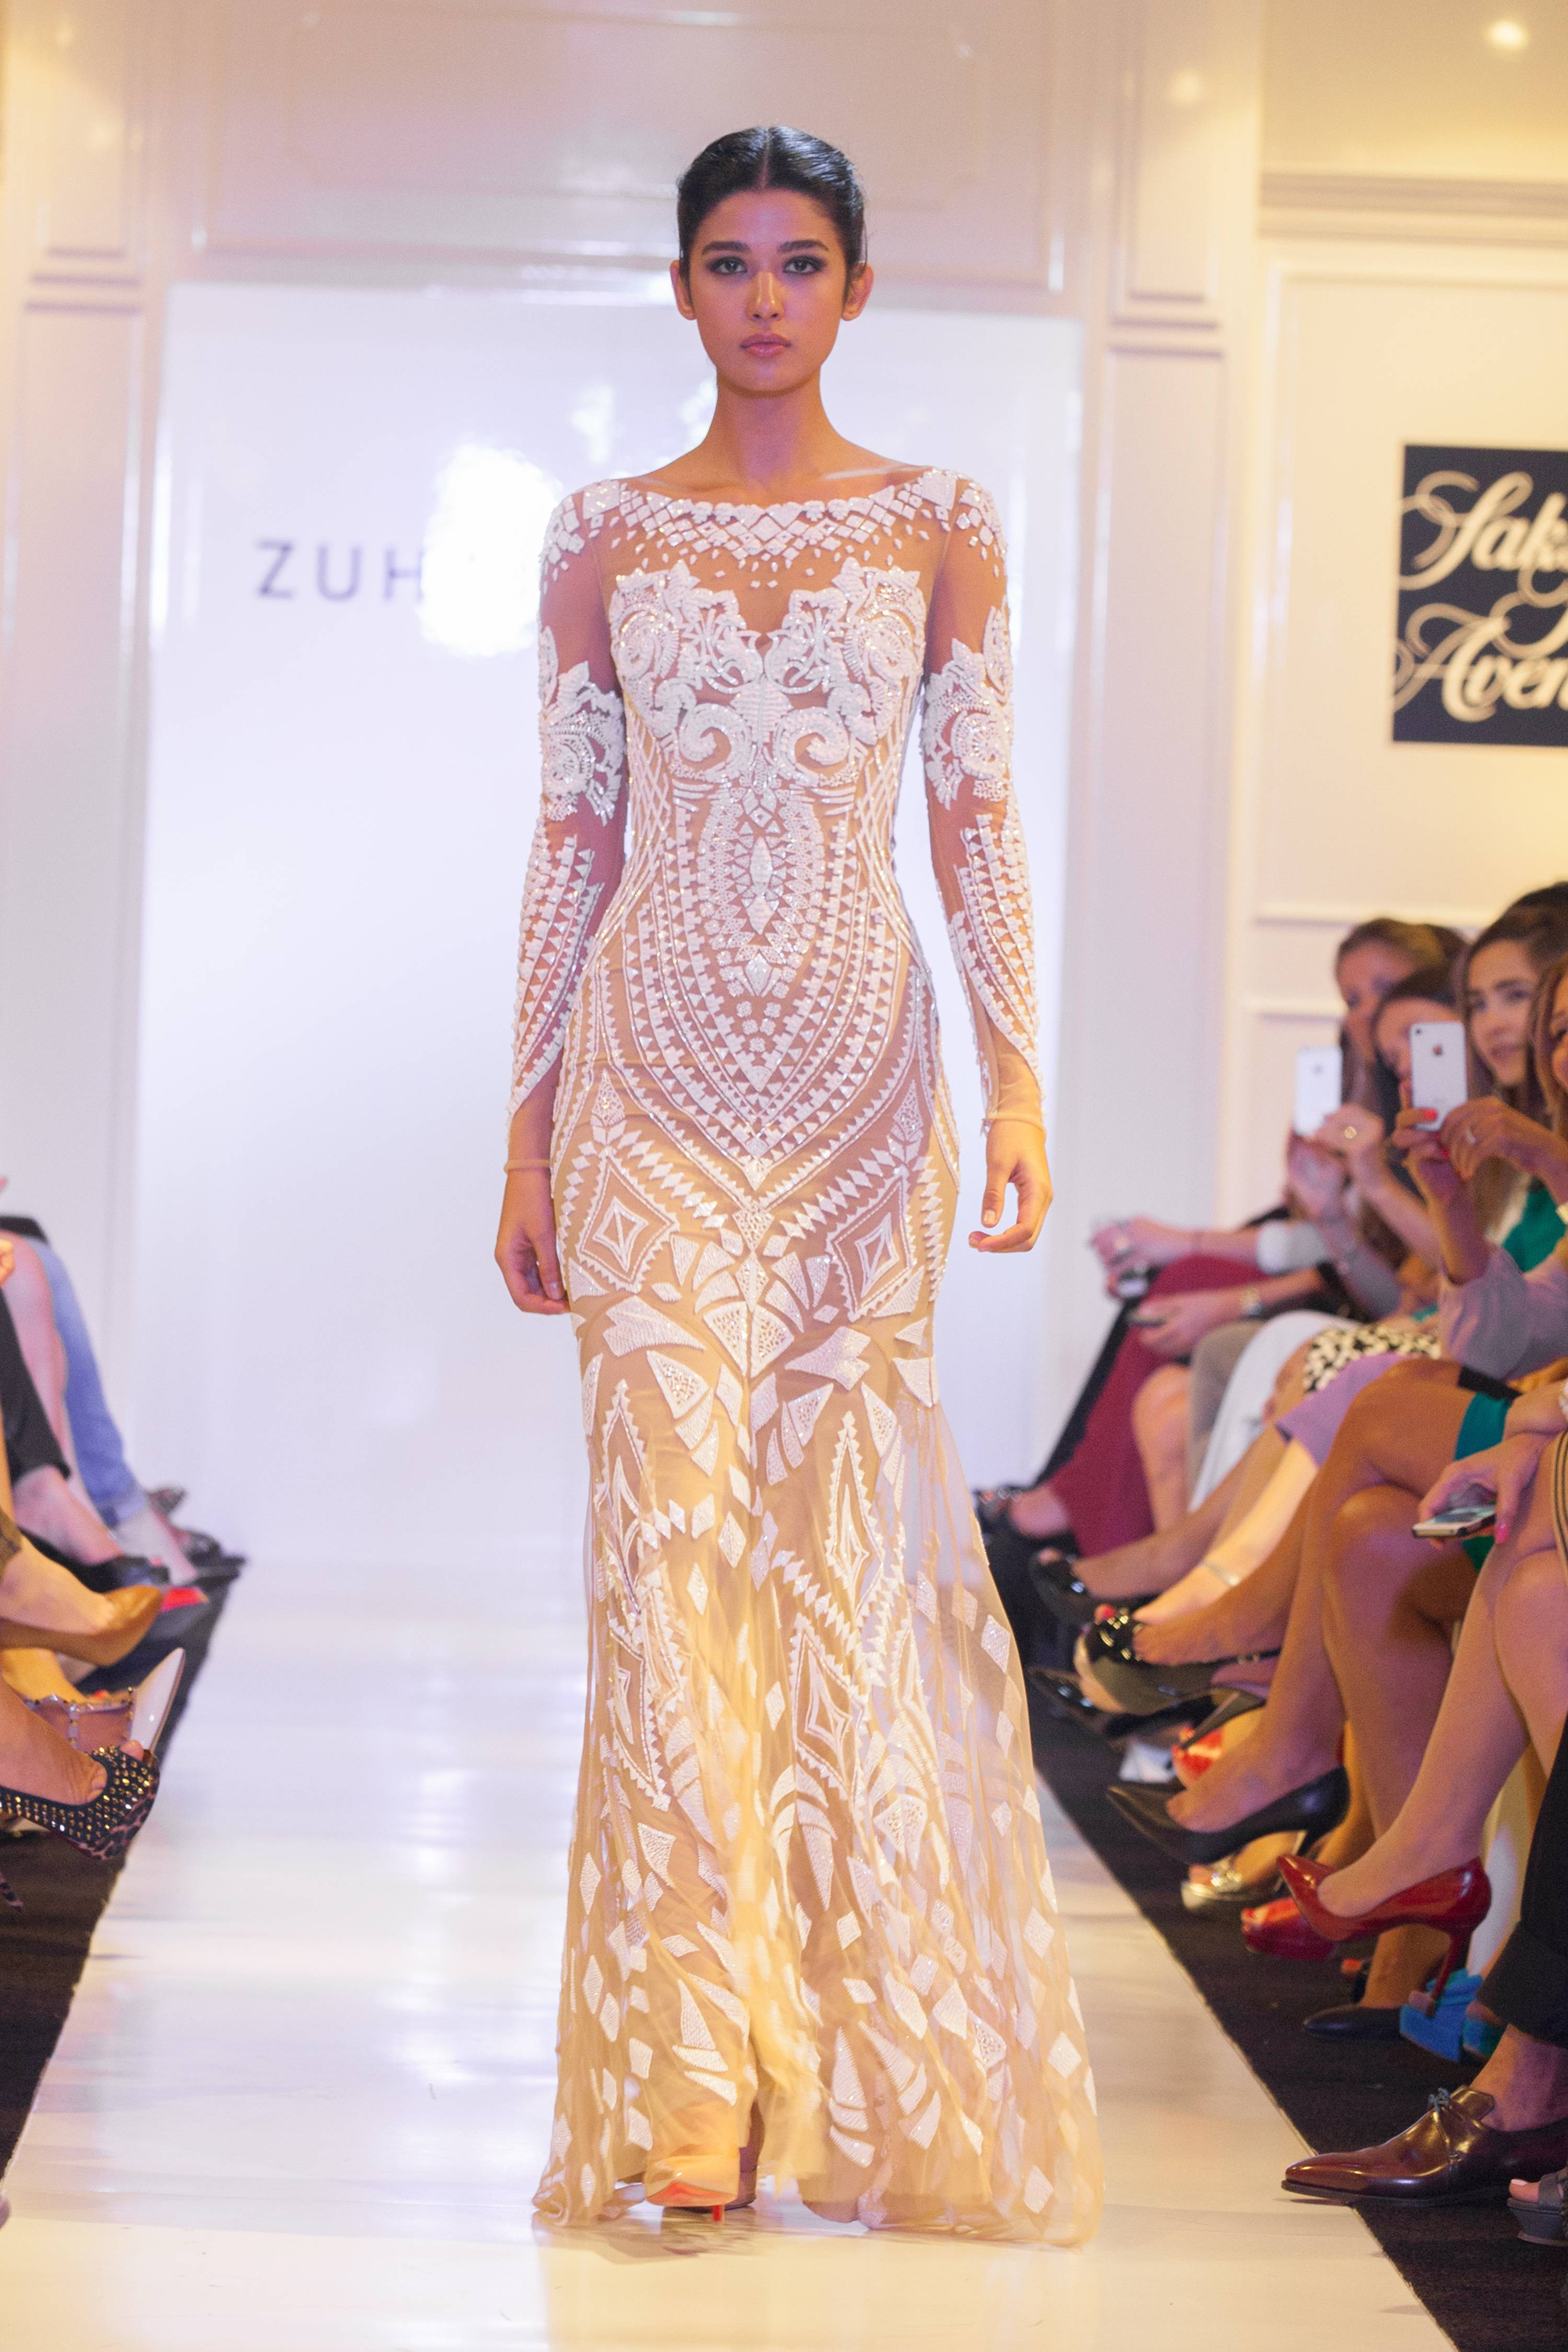 High Russian Pop Artist Victorvasarely Featured Contrasting Lines Often A Leitmotif Geometricflowers To Zuhair Murad Presents Eveningwear At Saks Fifth Collection Was Inspired By Work wedding dress Saks Fifth Avenue Dresses